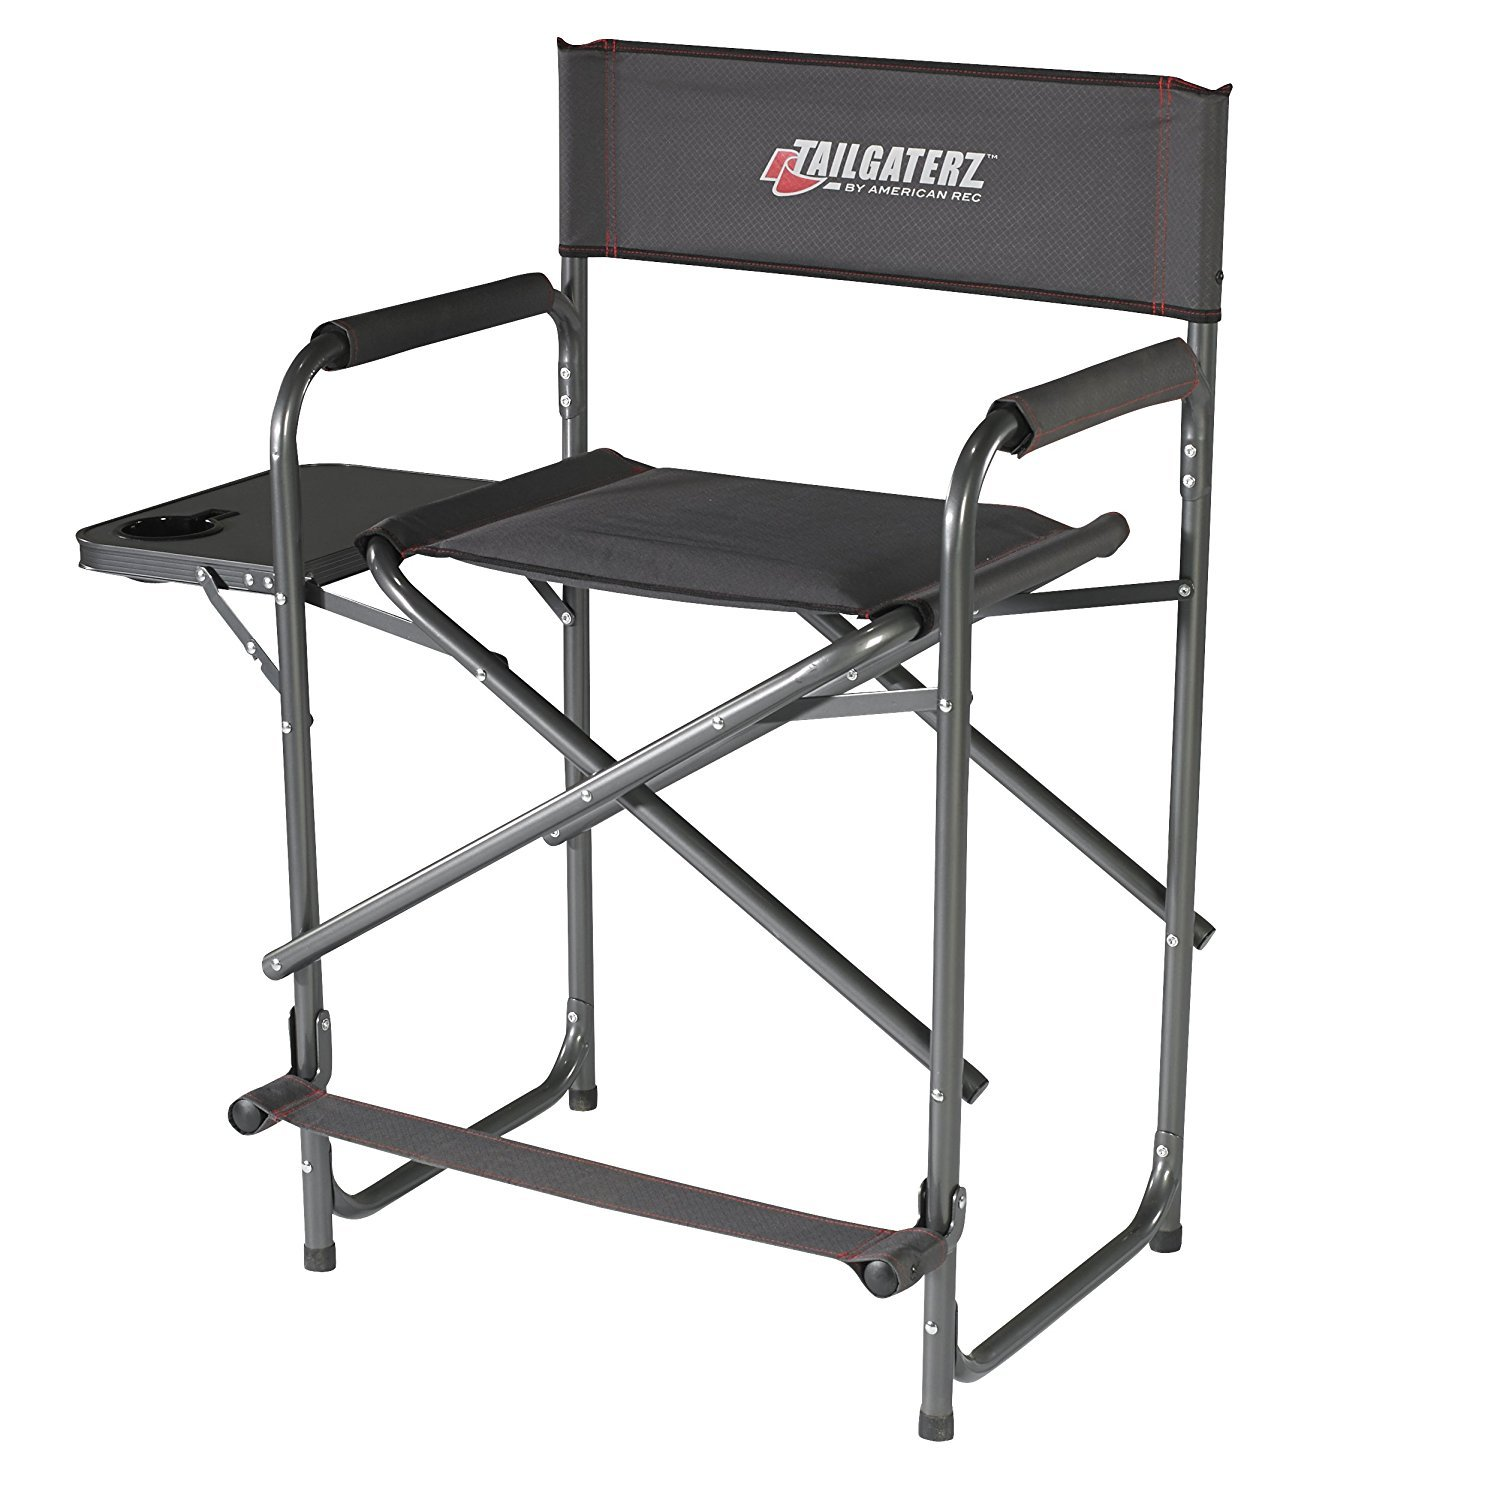 Tailgaterz Take-Out Seat Steel Chair with Side Table Game Day Graphite [並行輸入品] B077QQR1C3